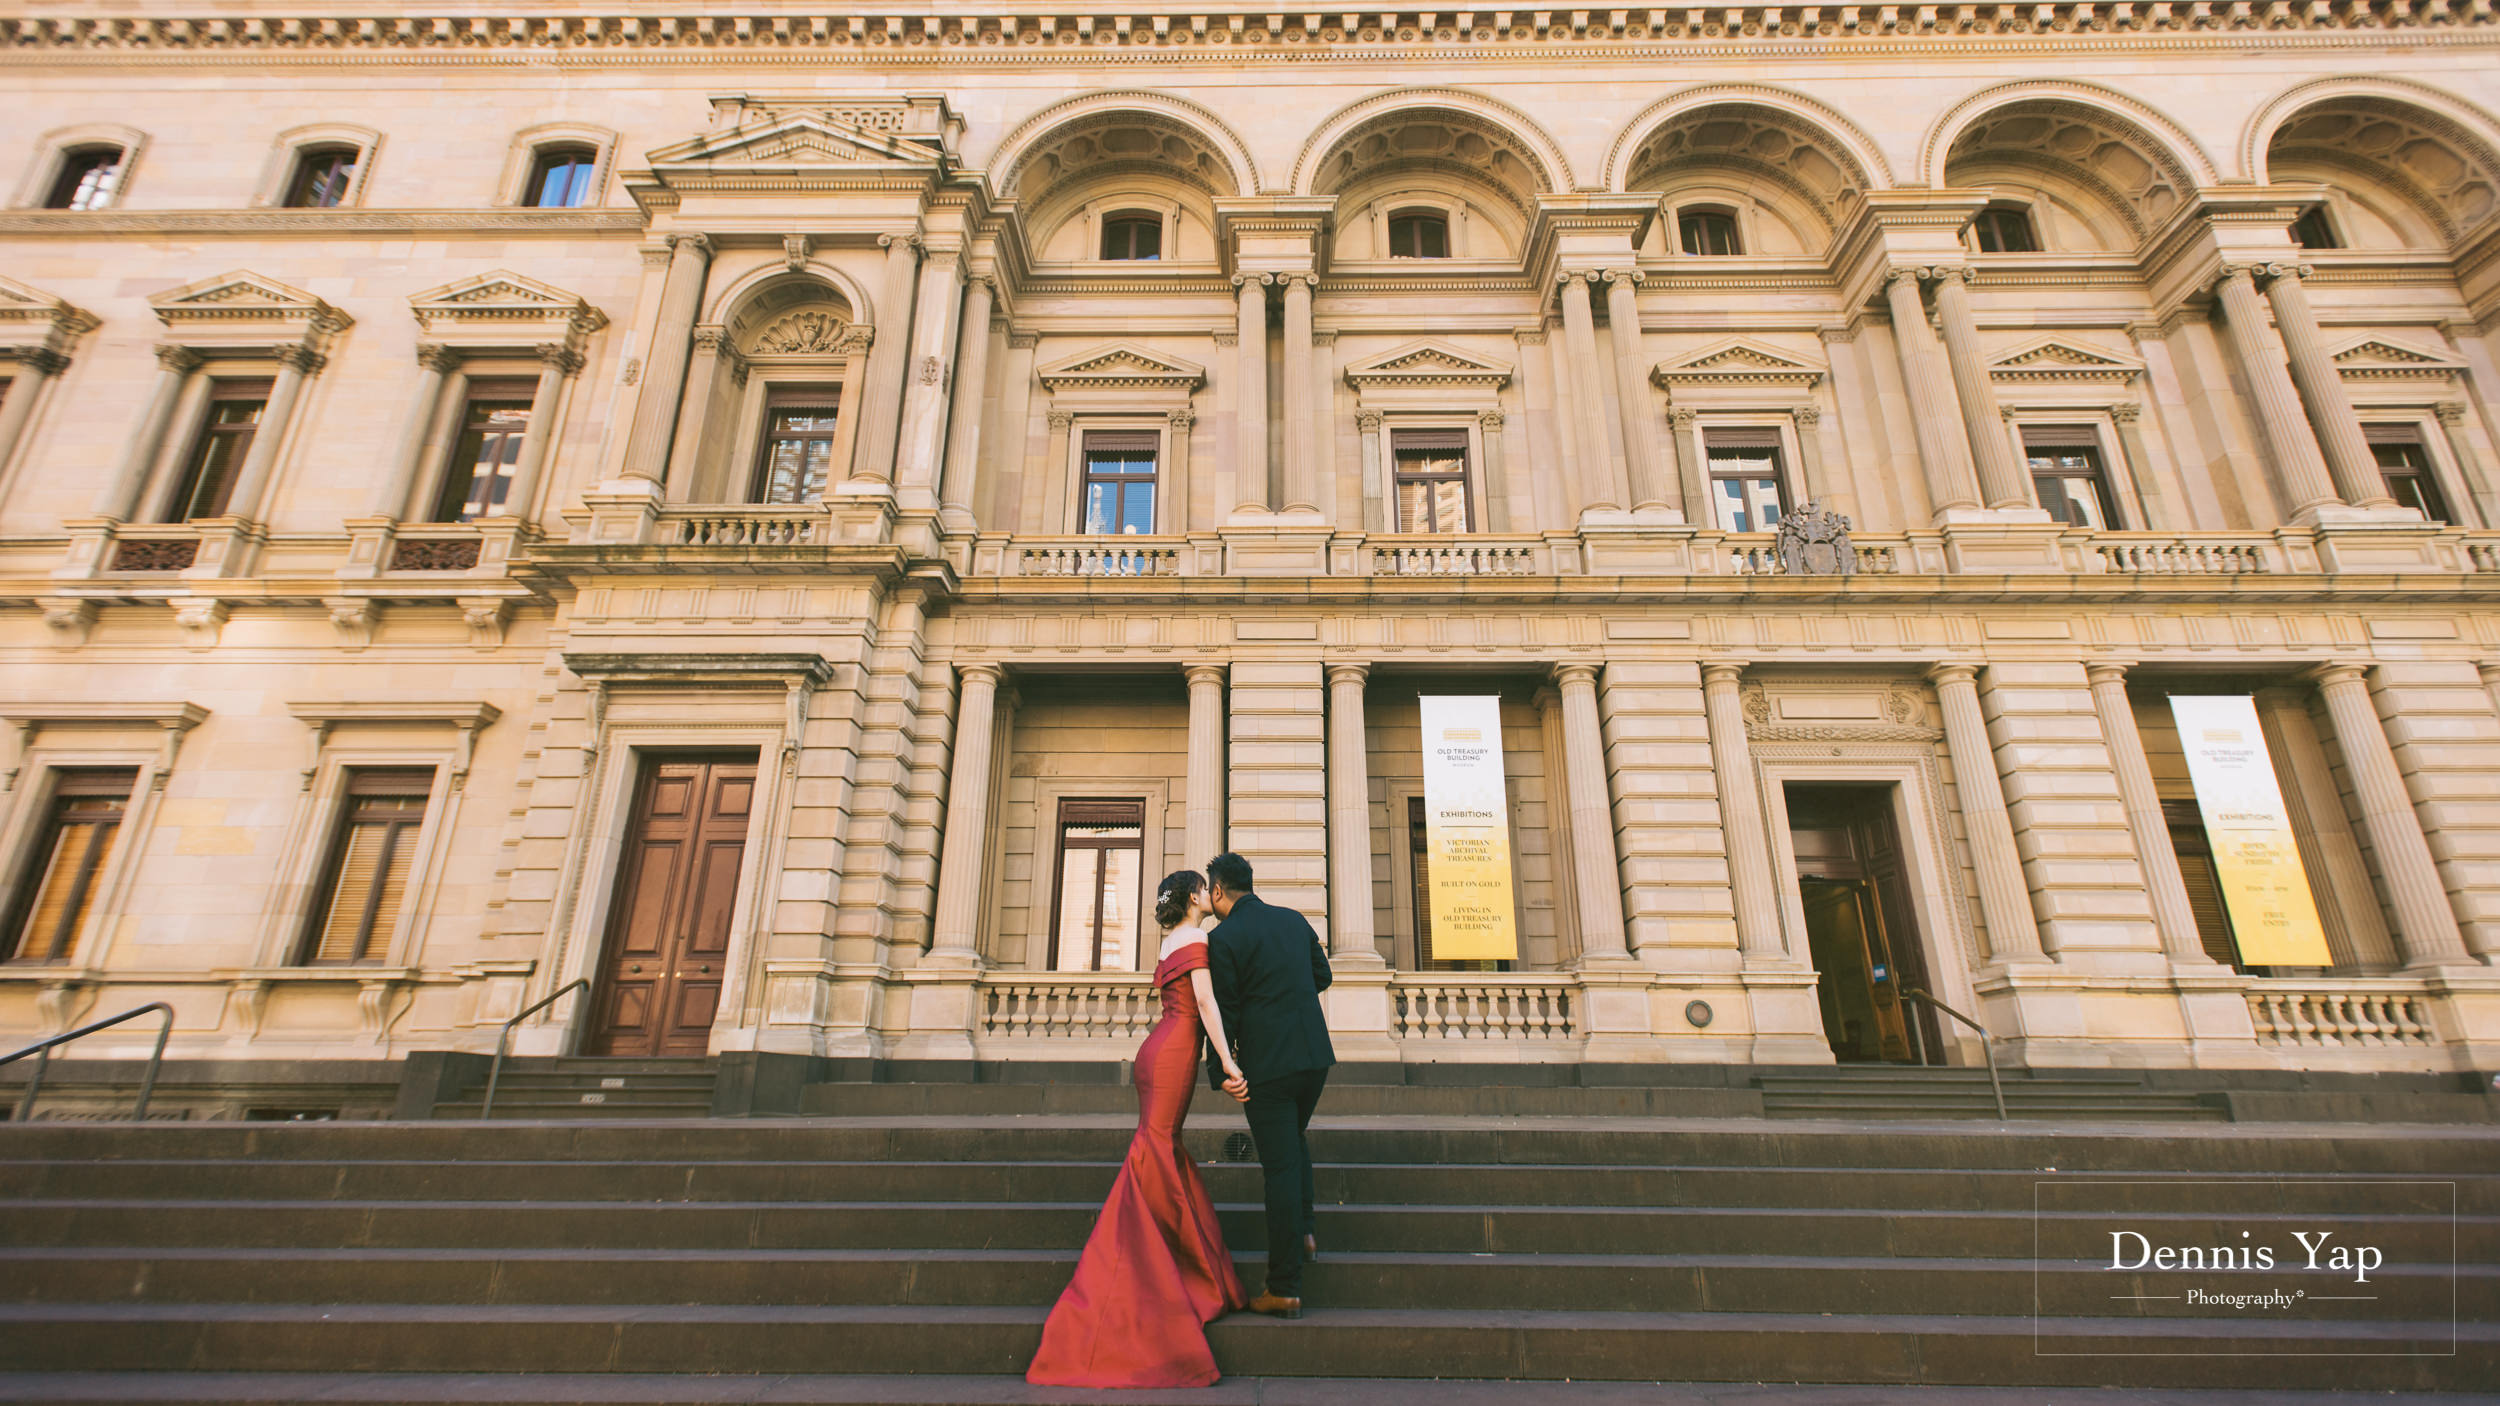 johnson joanne prewedding melbourne dennis yap photography fine art portrait paris dennis yap photography-8.jpg